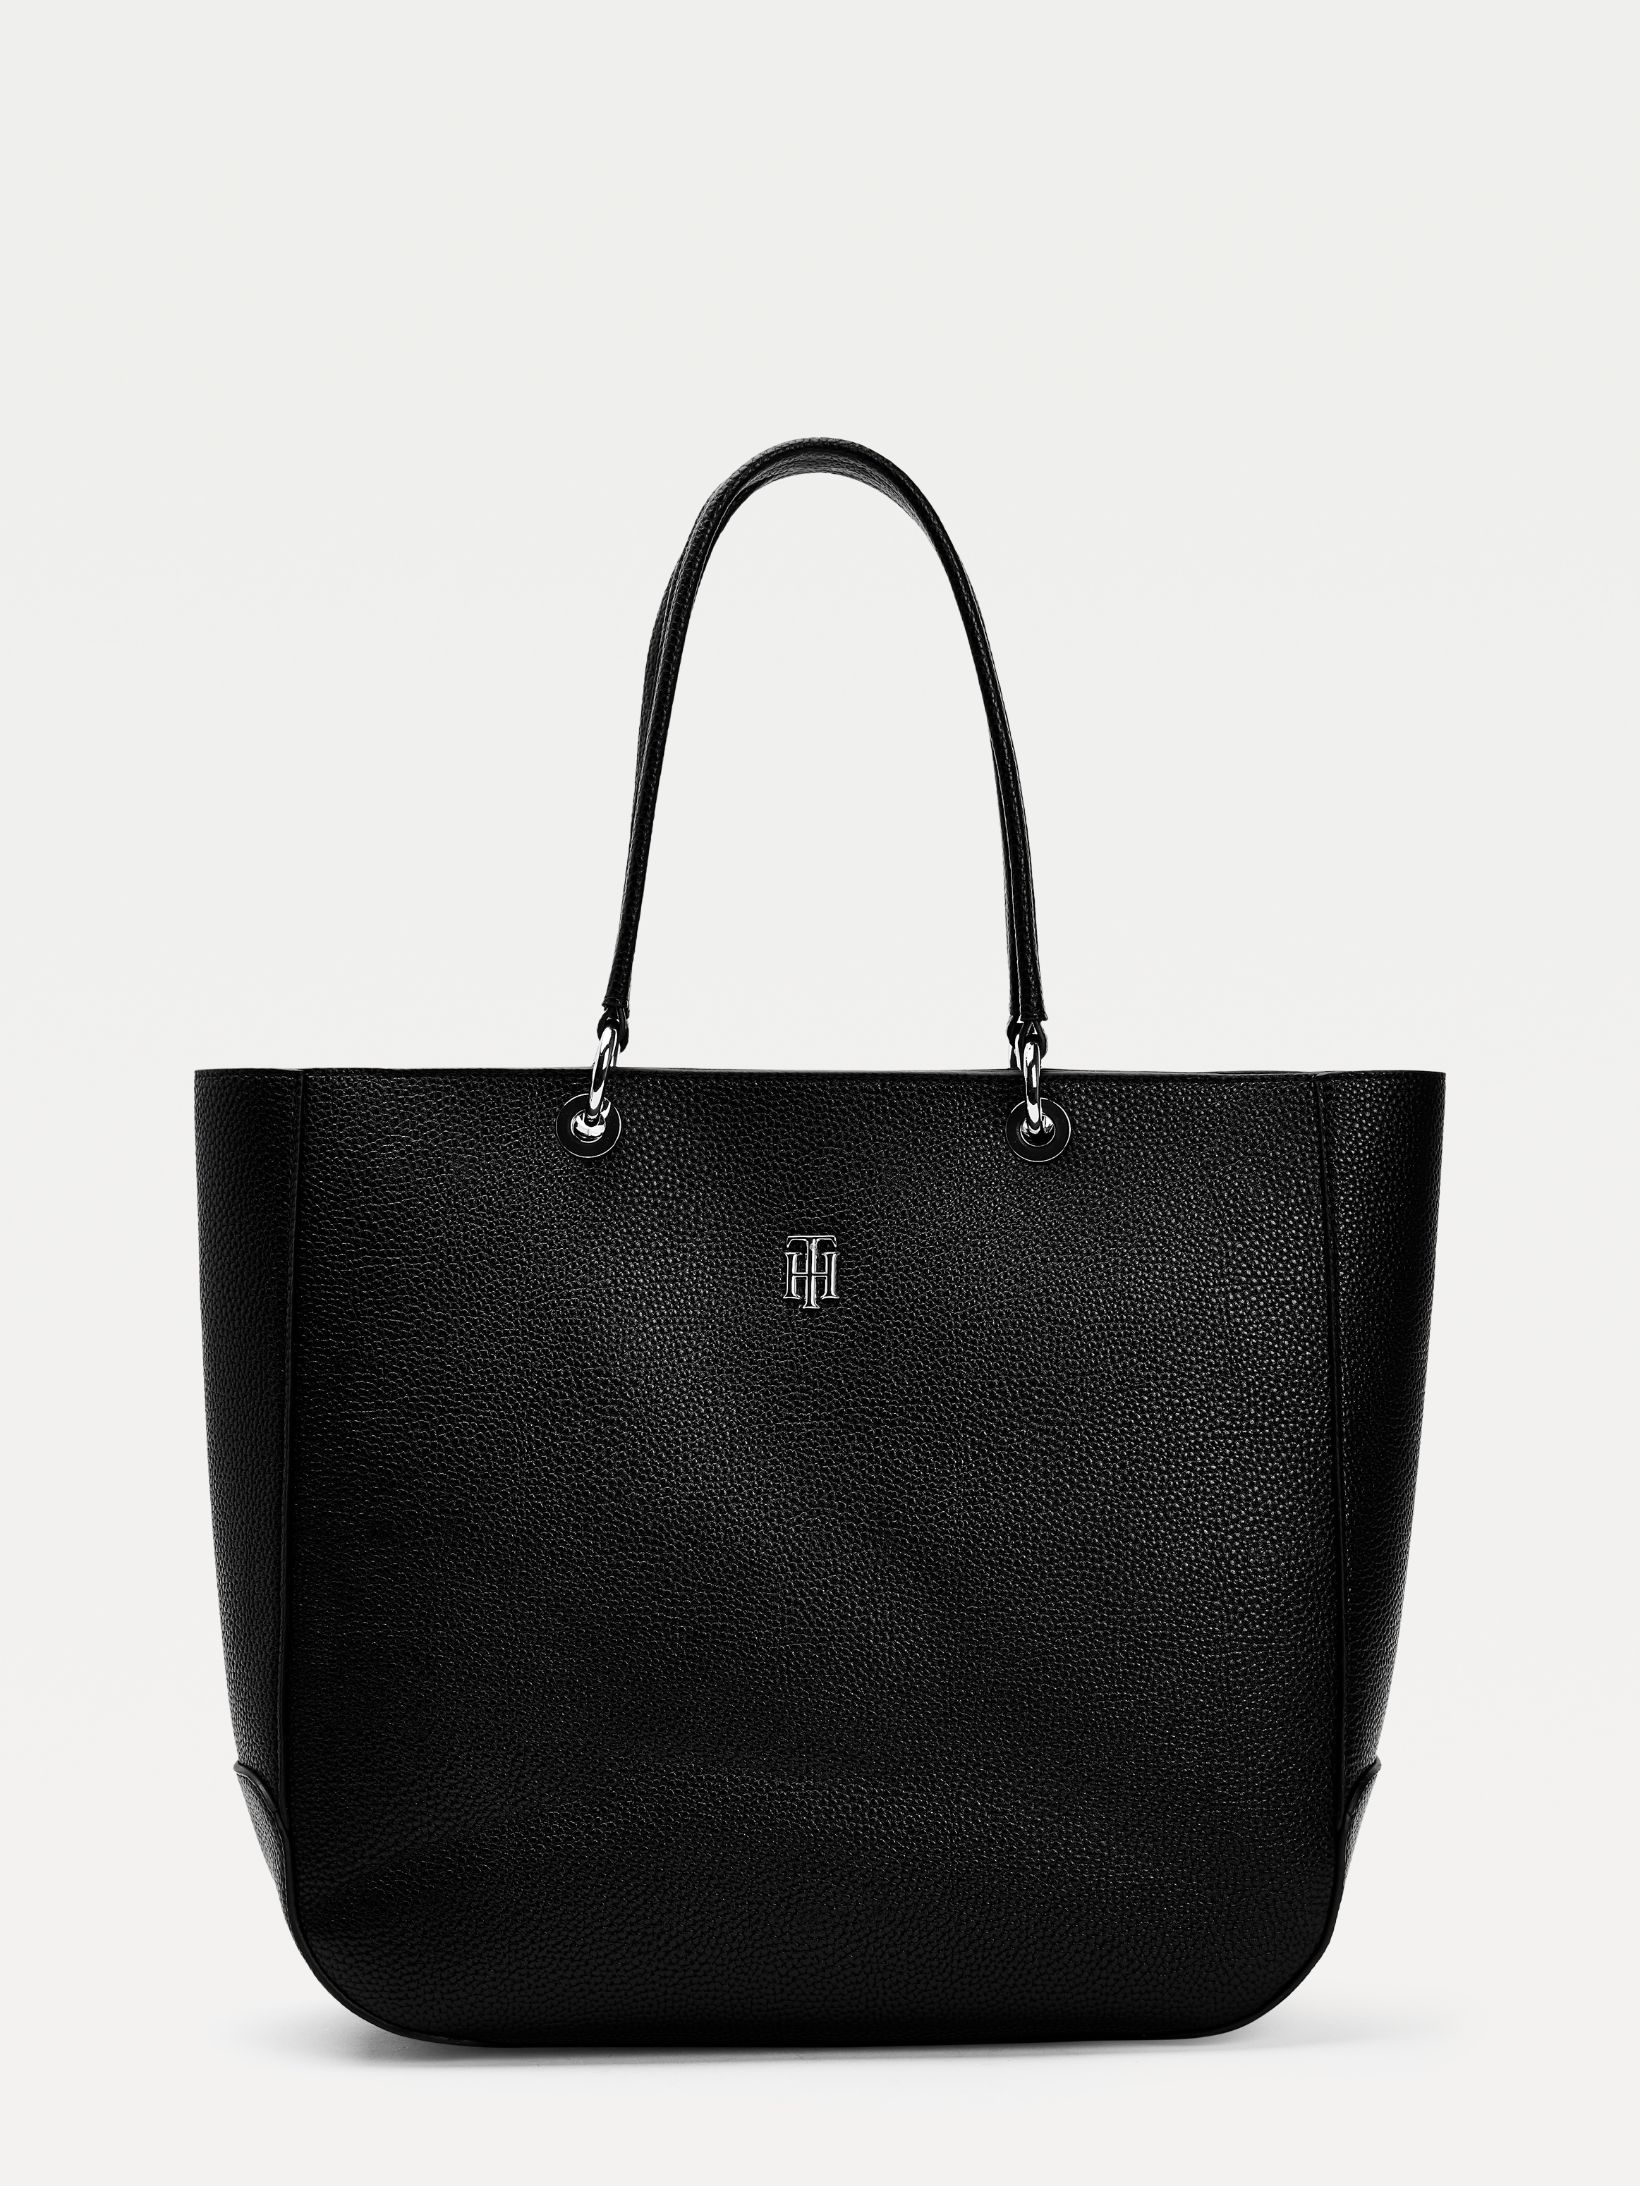 TH Large Essence Tote Bag